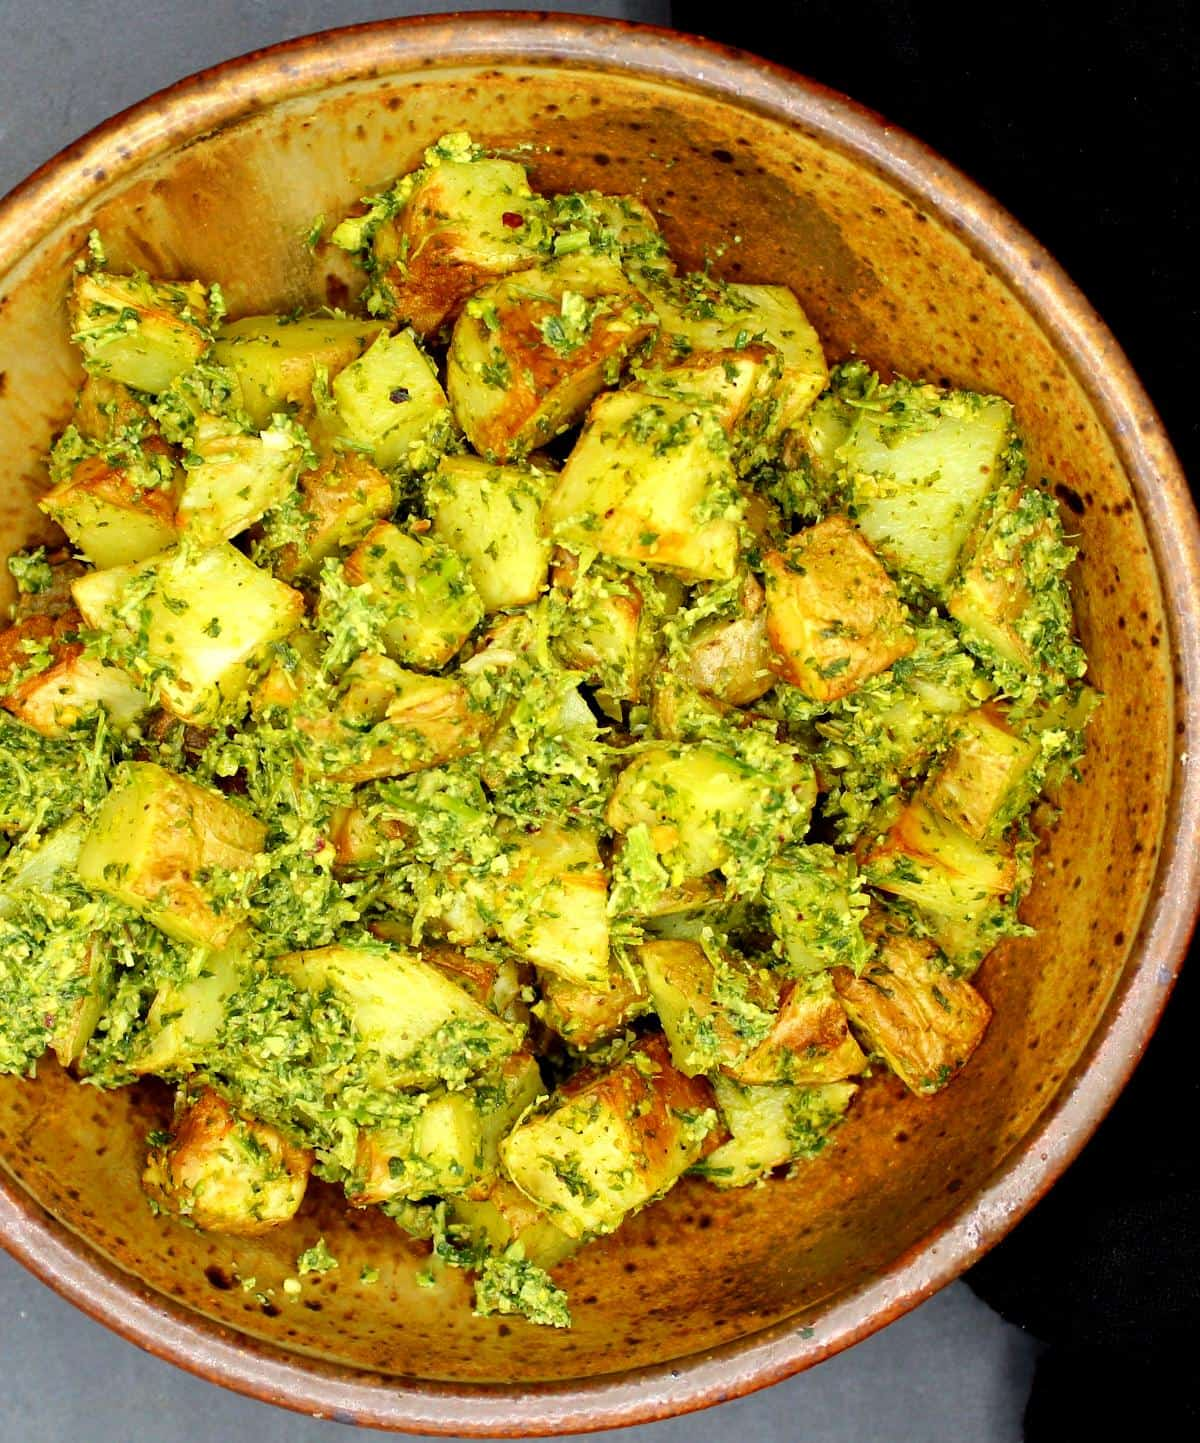 Potatoes tossed with vegan carrot pesto in a speckled bowl.